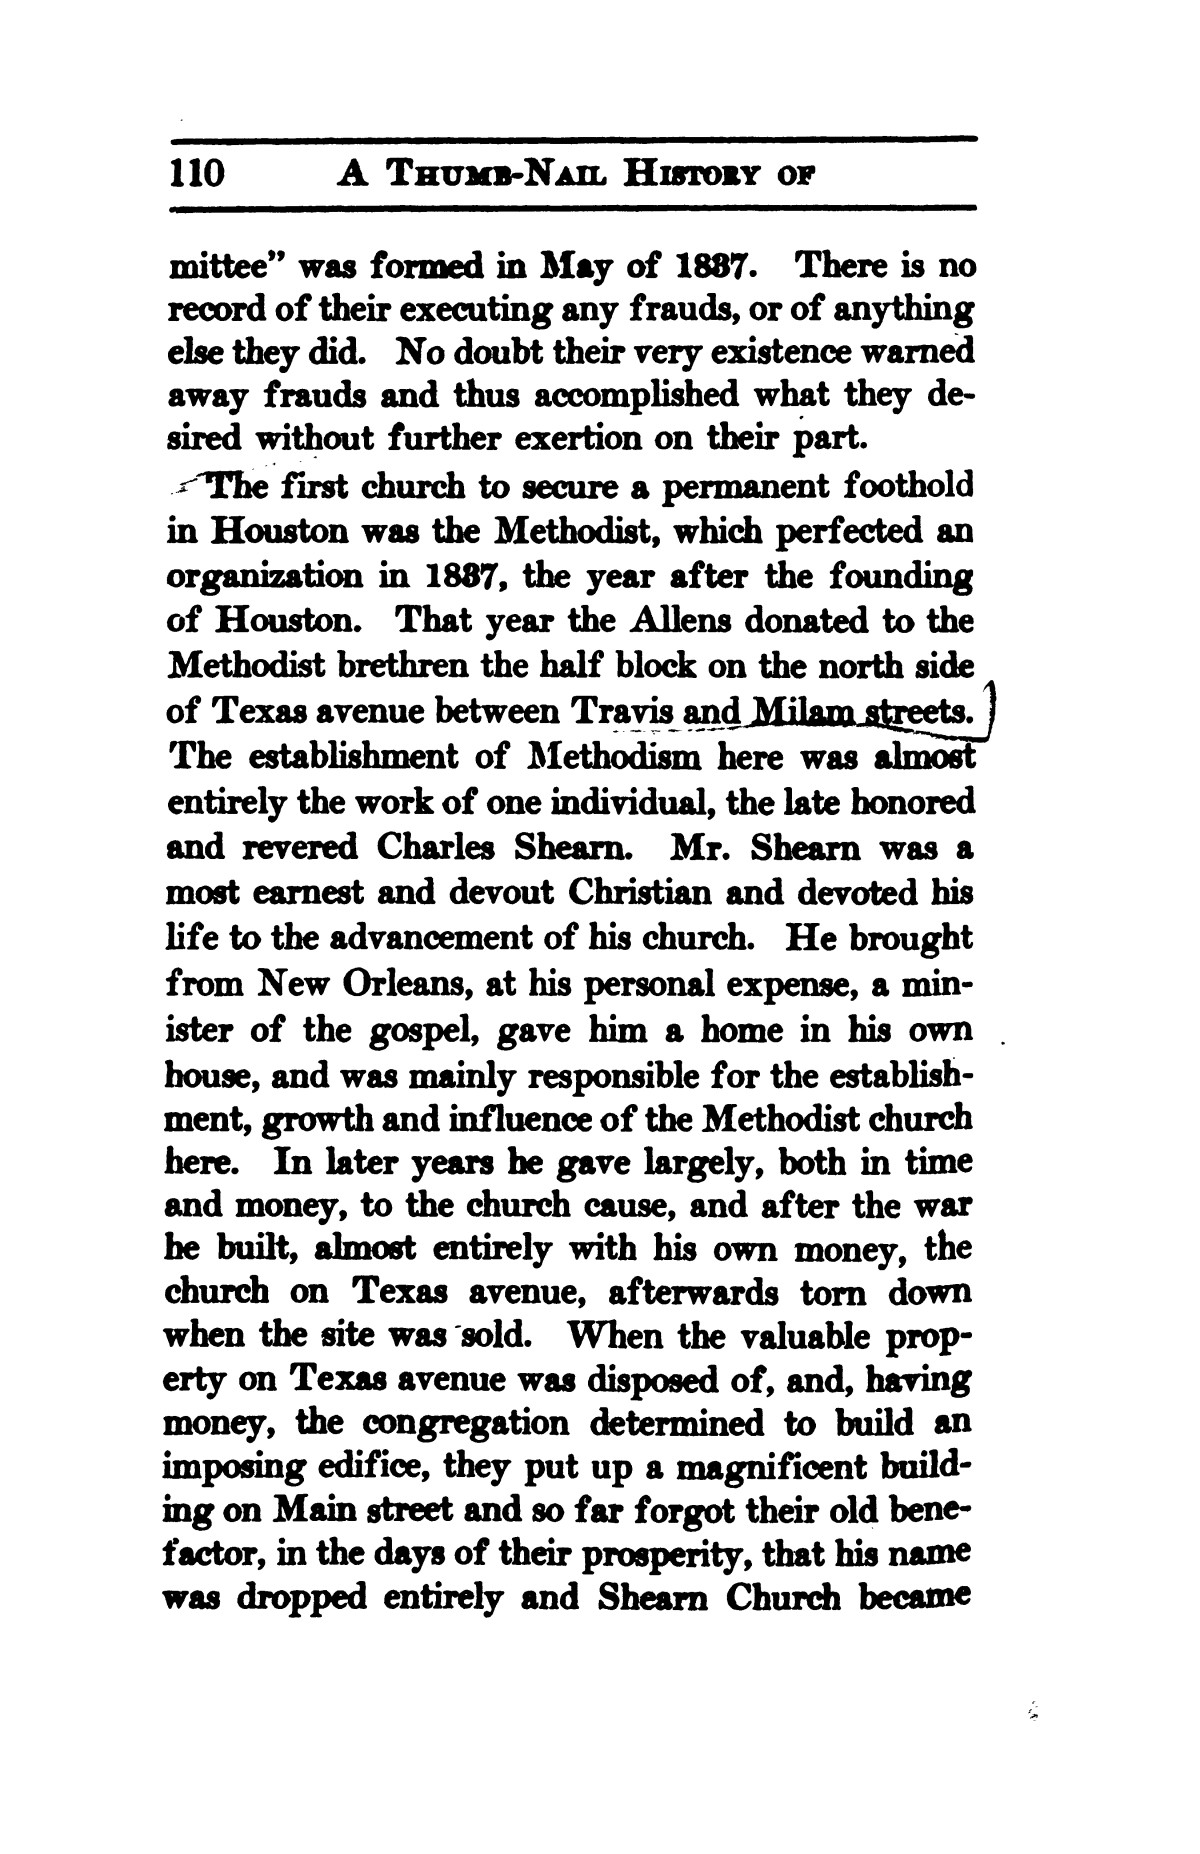 A thumb-nail history of the city of Houston, Texas, from its founding in 1836 to the year 1912                                                                                                      110